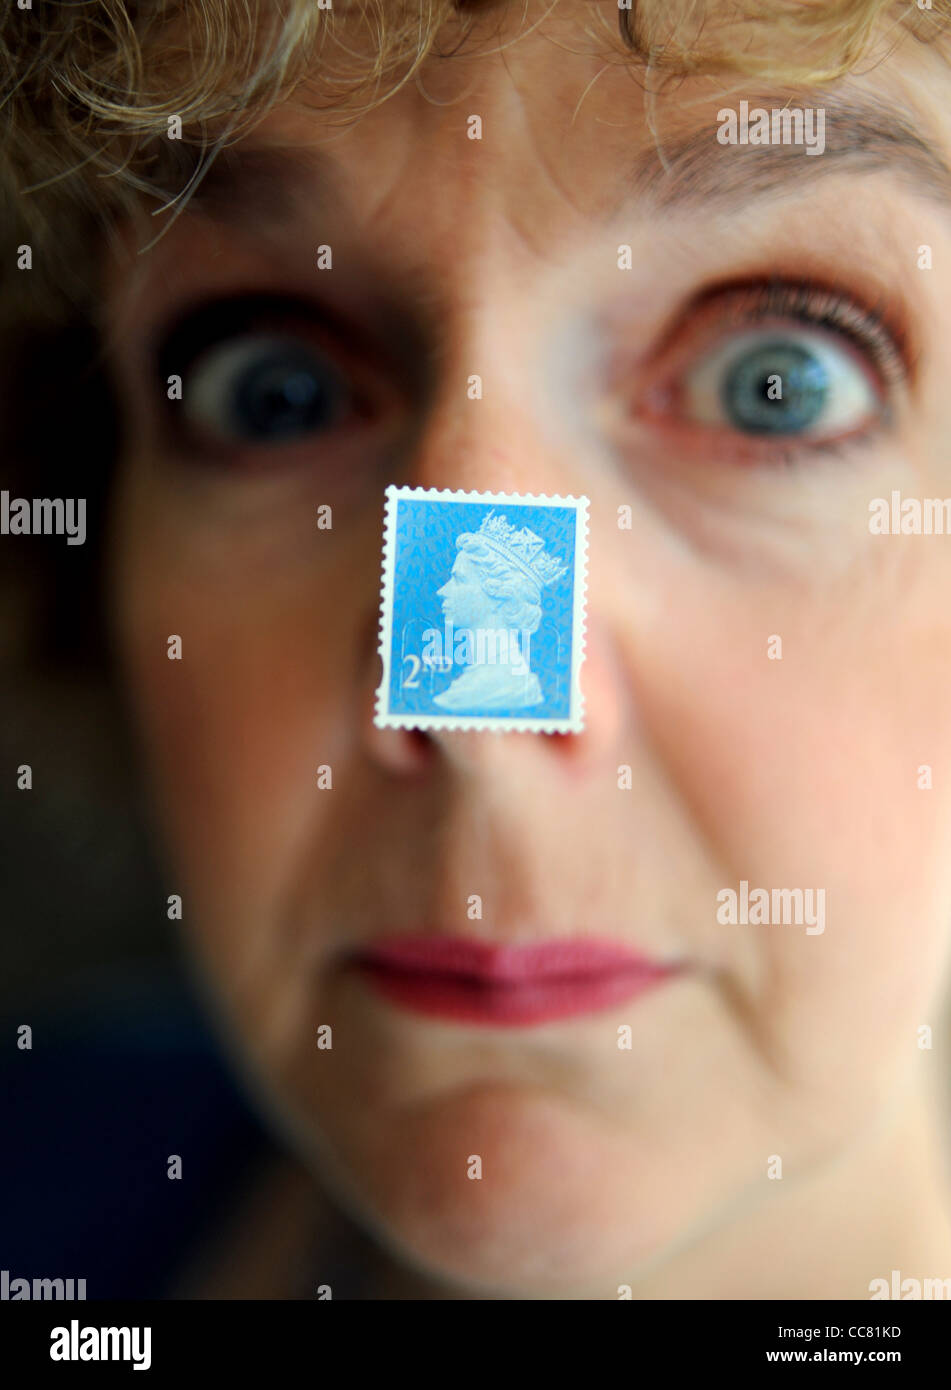 Middle aged woman close up face with a British second 2nd class postage stamp stuck to nose model Stock Photo